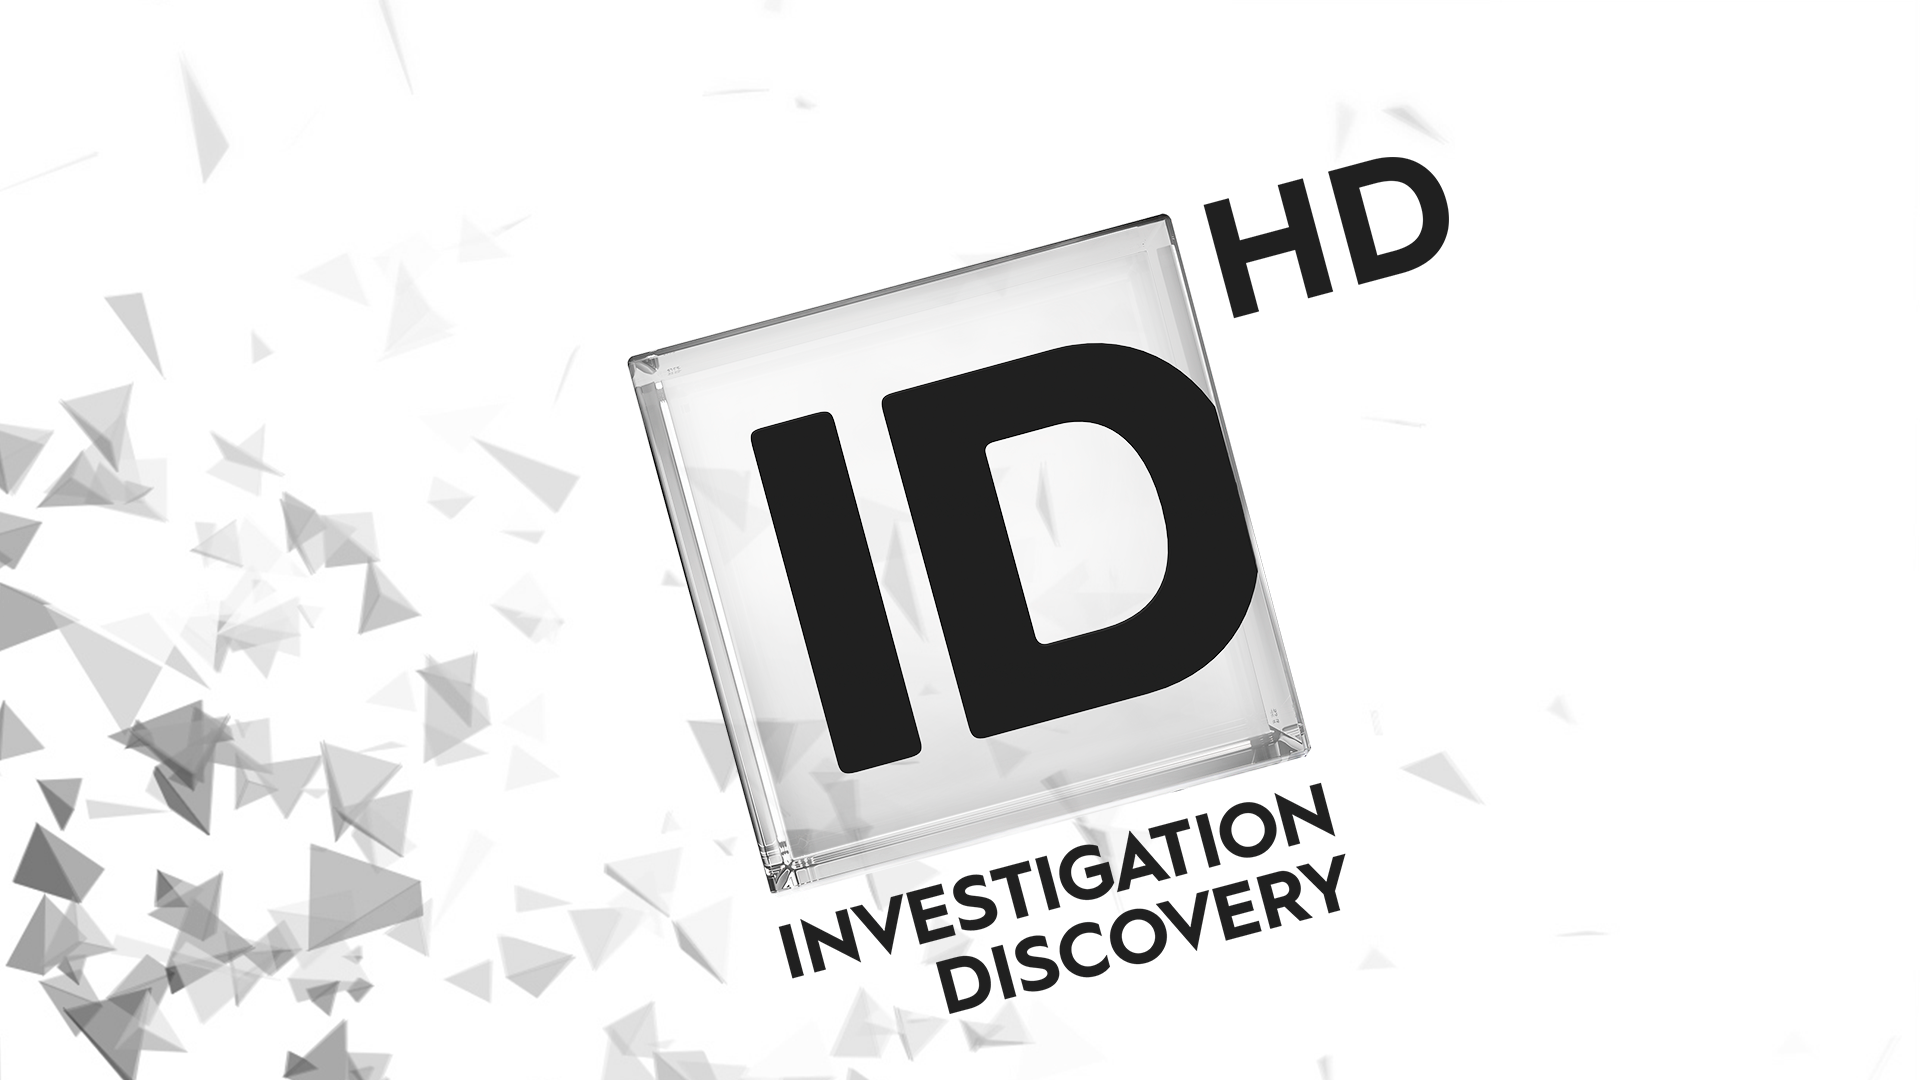 ID Investigation Discovery HD